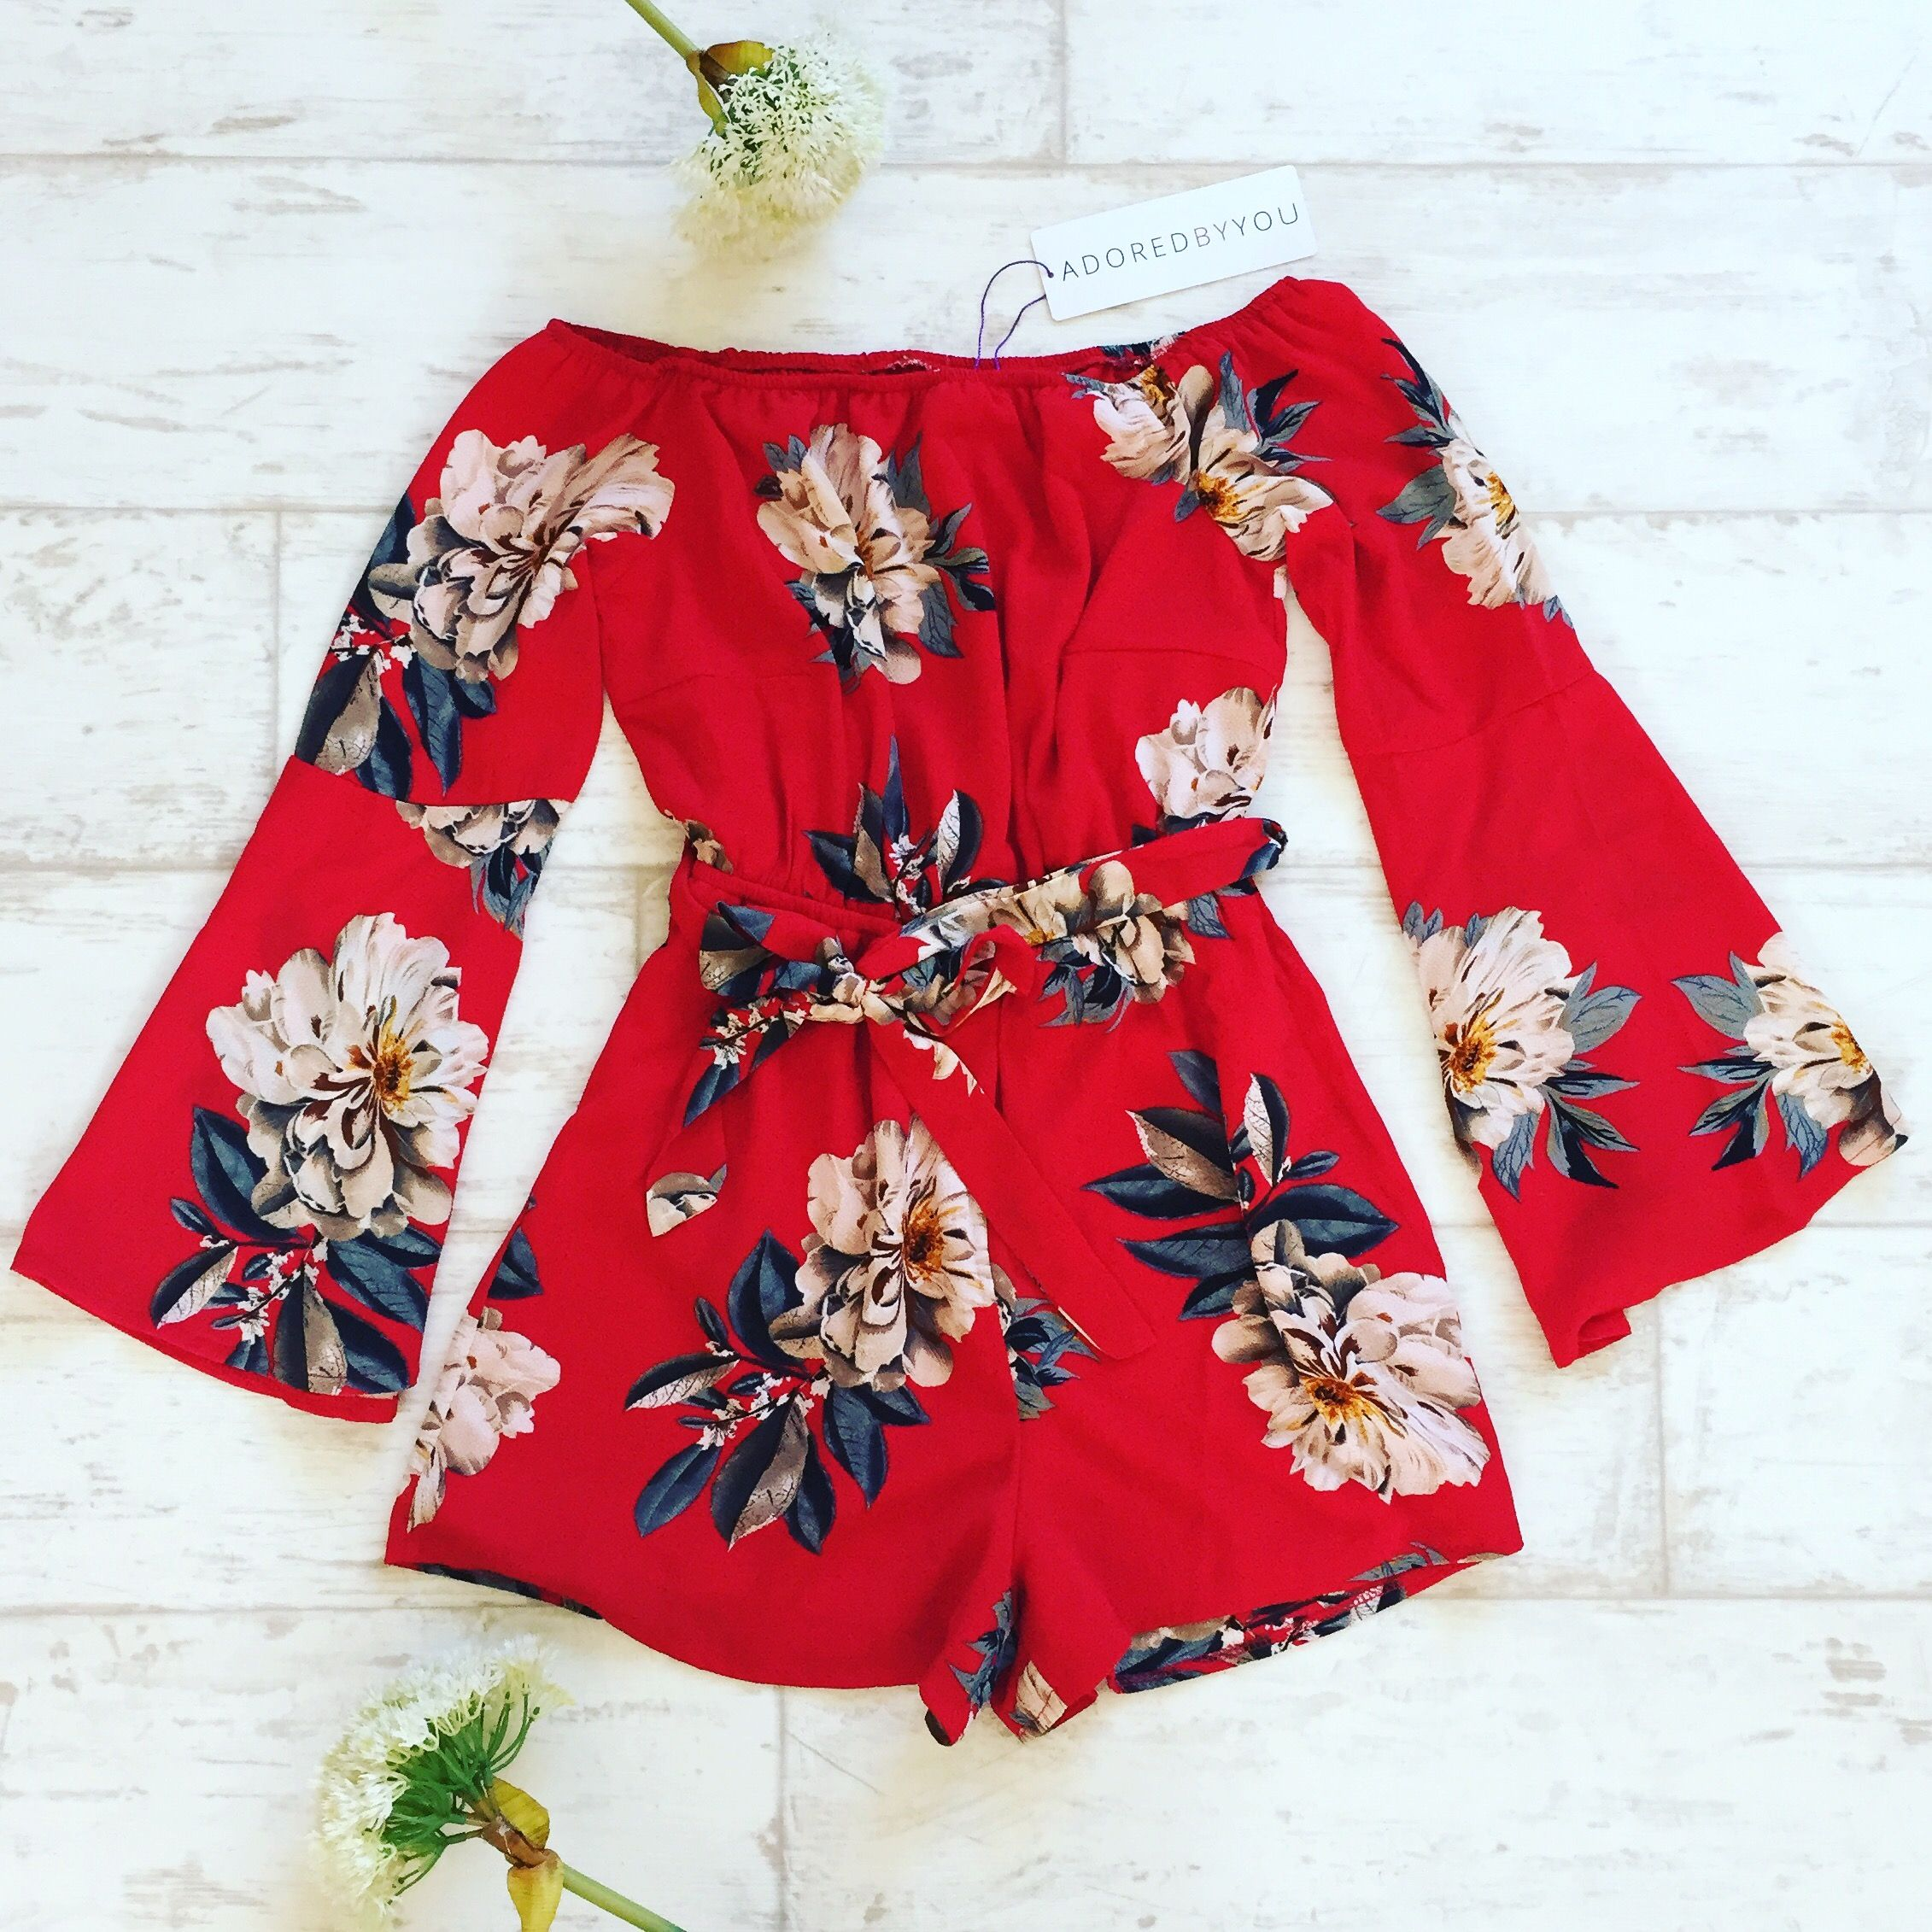 b44352c73b0 Adored By You Red Floral Print Bardot Playsuit £29.99 holiday fashion